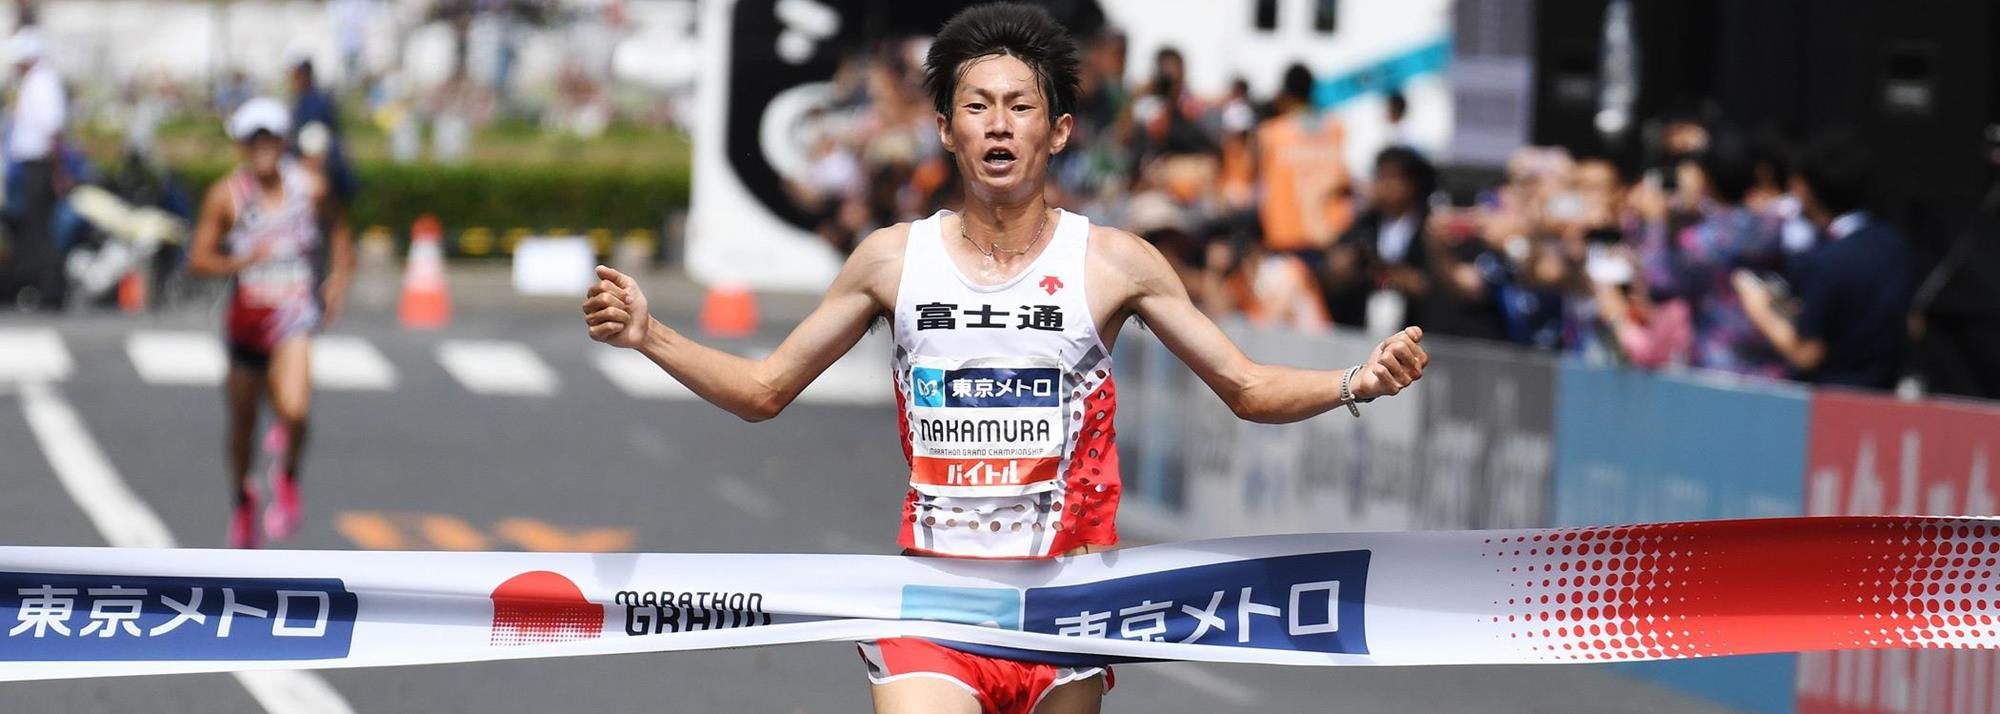 Japanese team named for World Athletics Half Marathon Championships Gdynia 2020